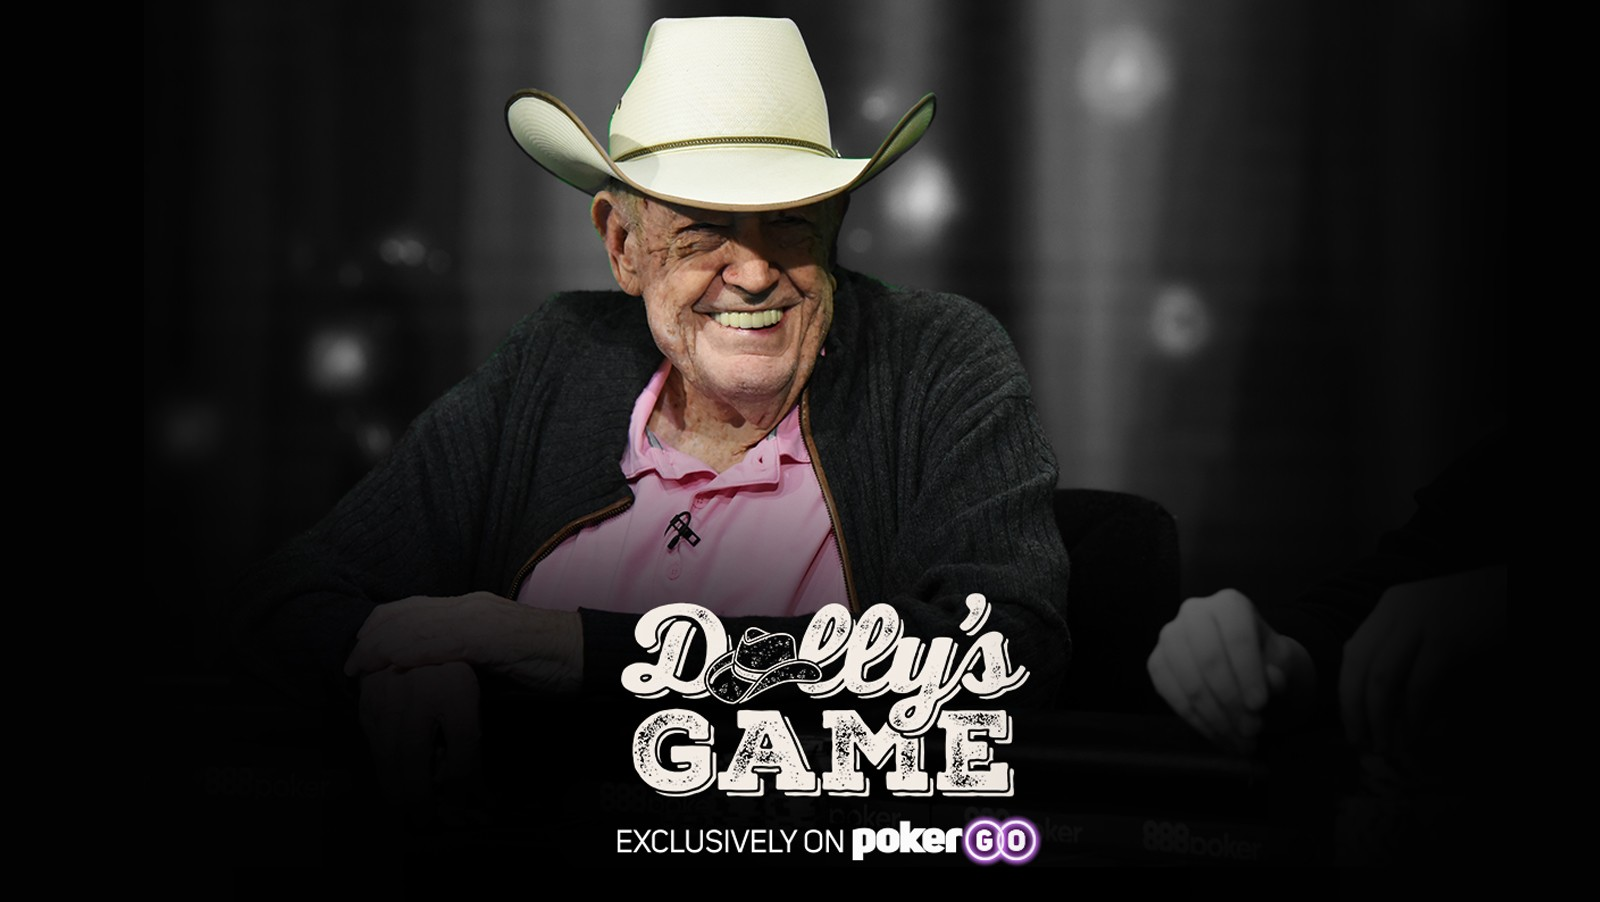 Poker Central launch Dolly's Game; Jungle Tweet; Soverel wins HR crown